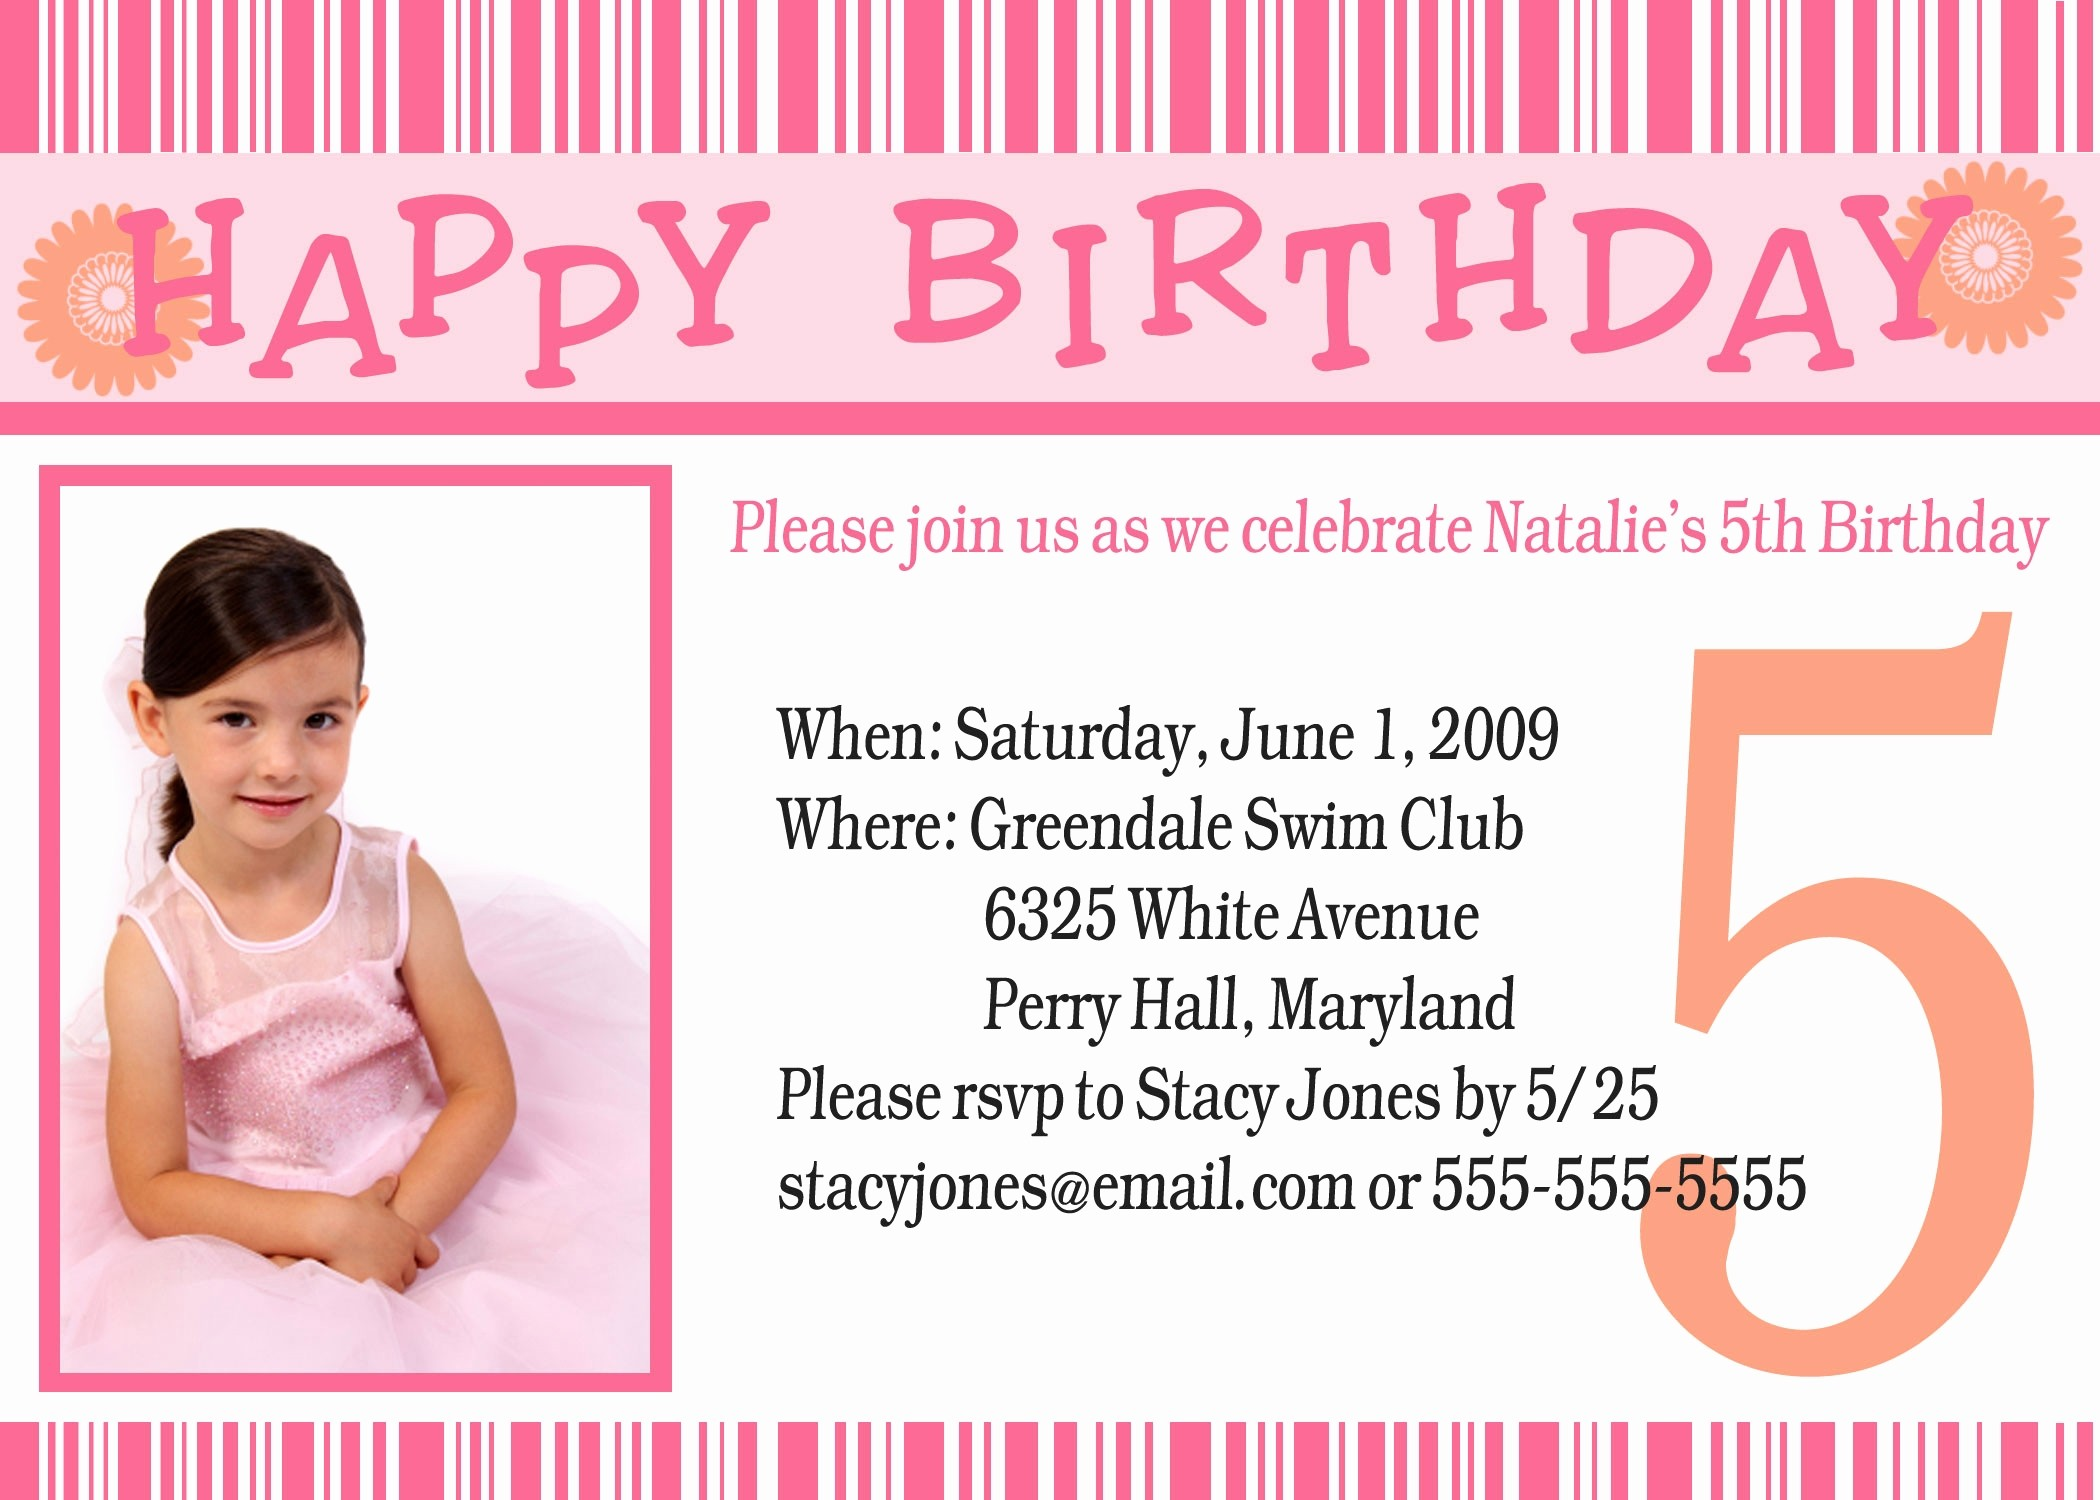 bday invitation sample ; invitation-sample-for-7th-birthday-save-46-elegant-gallery-what-to-write-in-a-birthday-invitation-card-of-invitation-sample-for-7th-birthday